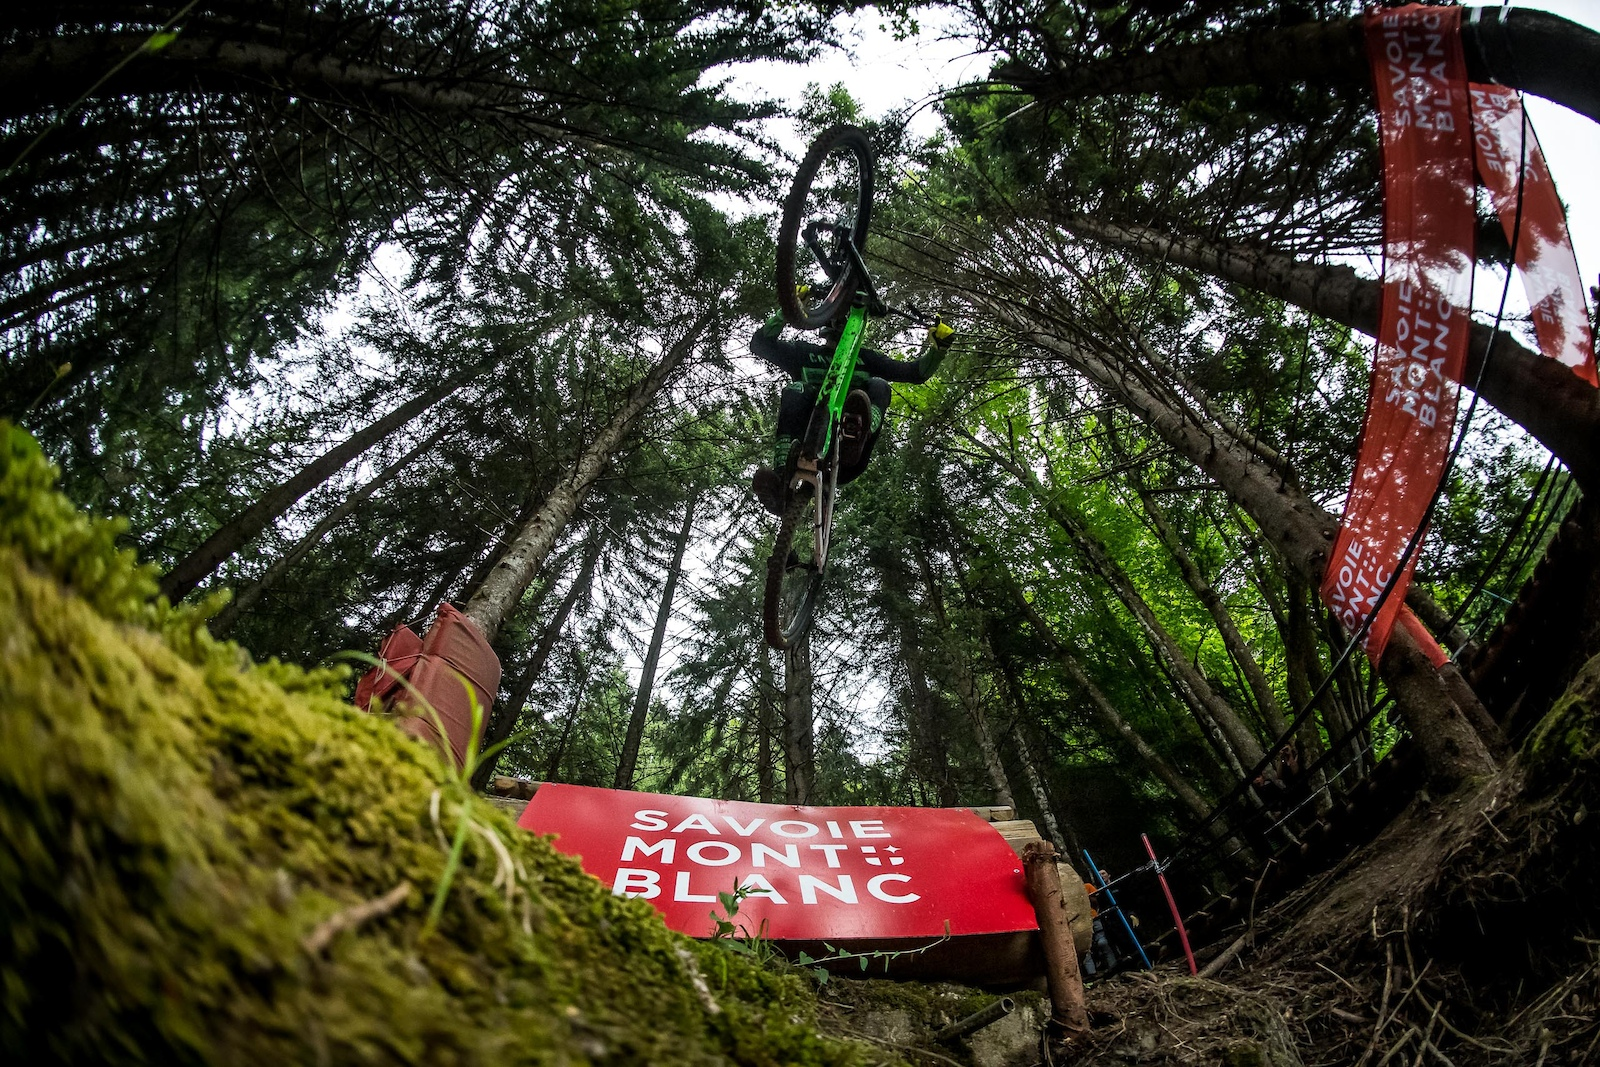 The final leap of faith that would soon take down Reece Wilson.